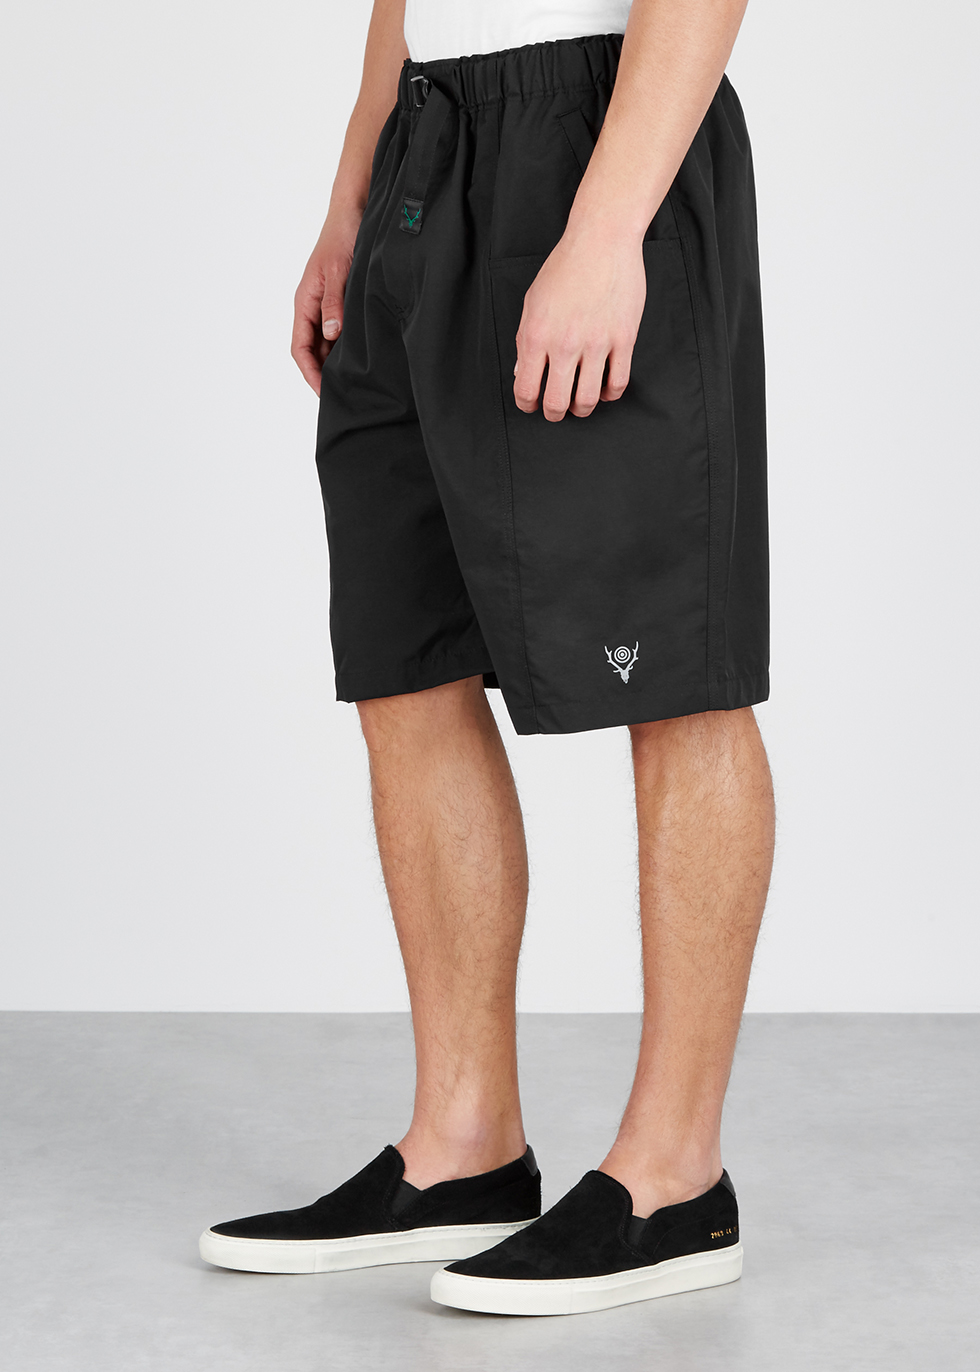 Black shell shorts - South2 West8